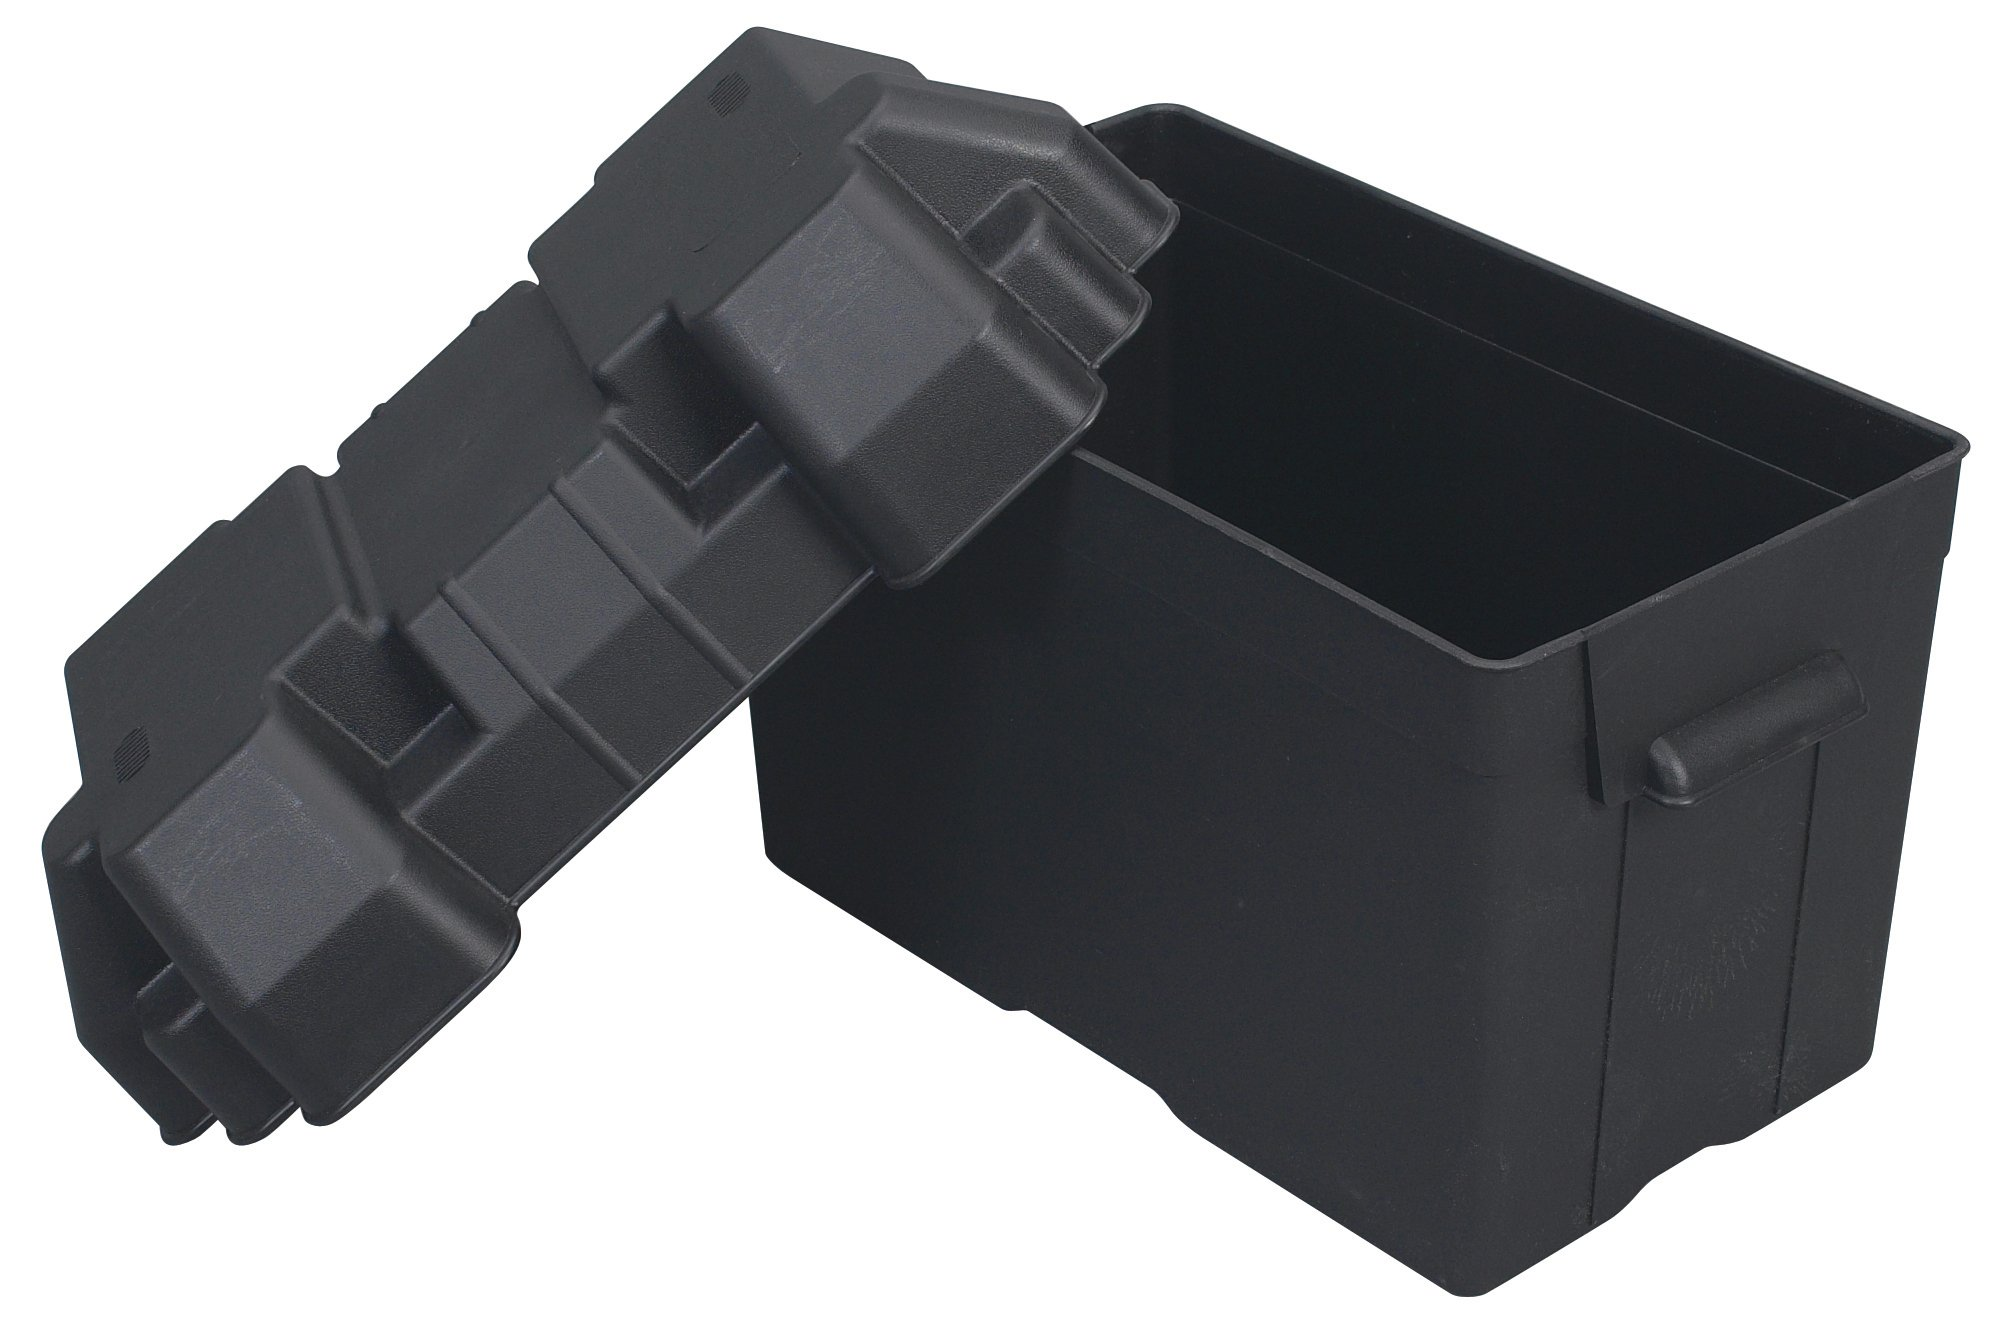 Moeller Injection-Molded Marine Battery Box (One 27, 30 or 31-Series Battery, 13.44'' x 7.75'' x 10.5'') by Moeller Marine